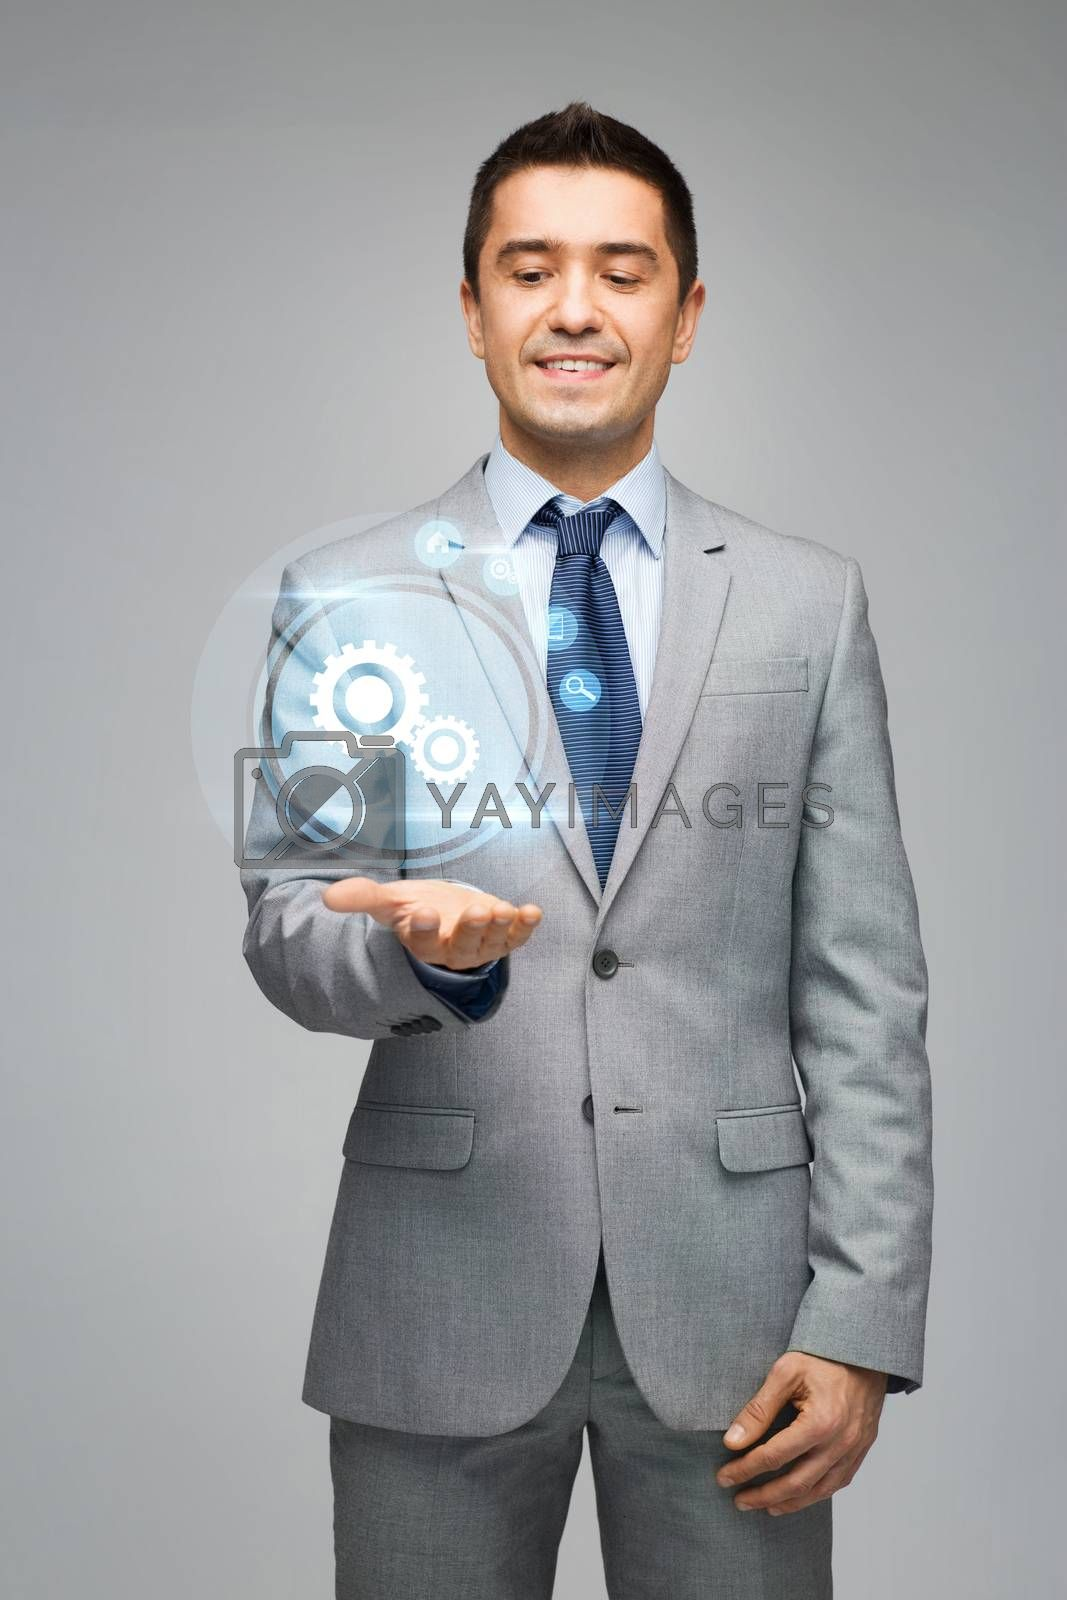 business, people and technology concept - happy businessman in suit showing or holding virtual projection of computer settings on hand palm over gray background